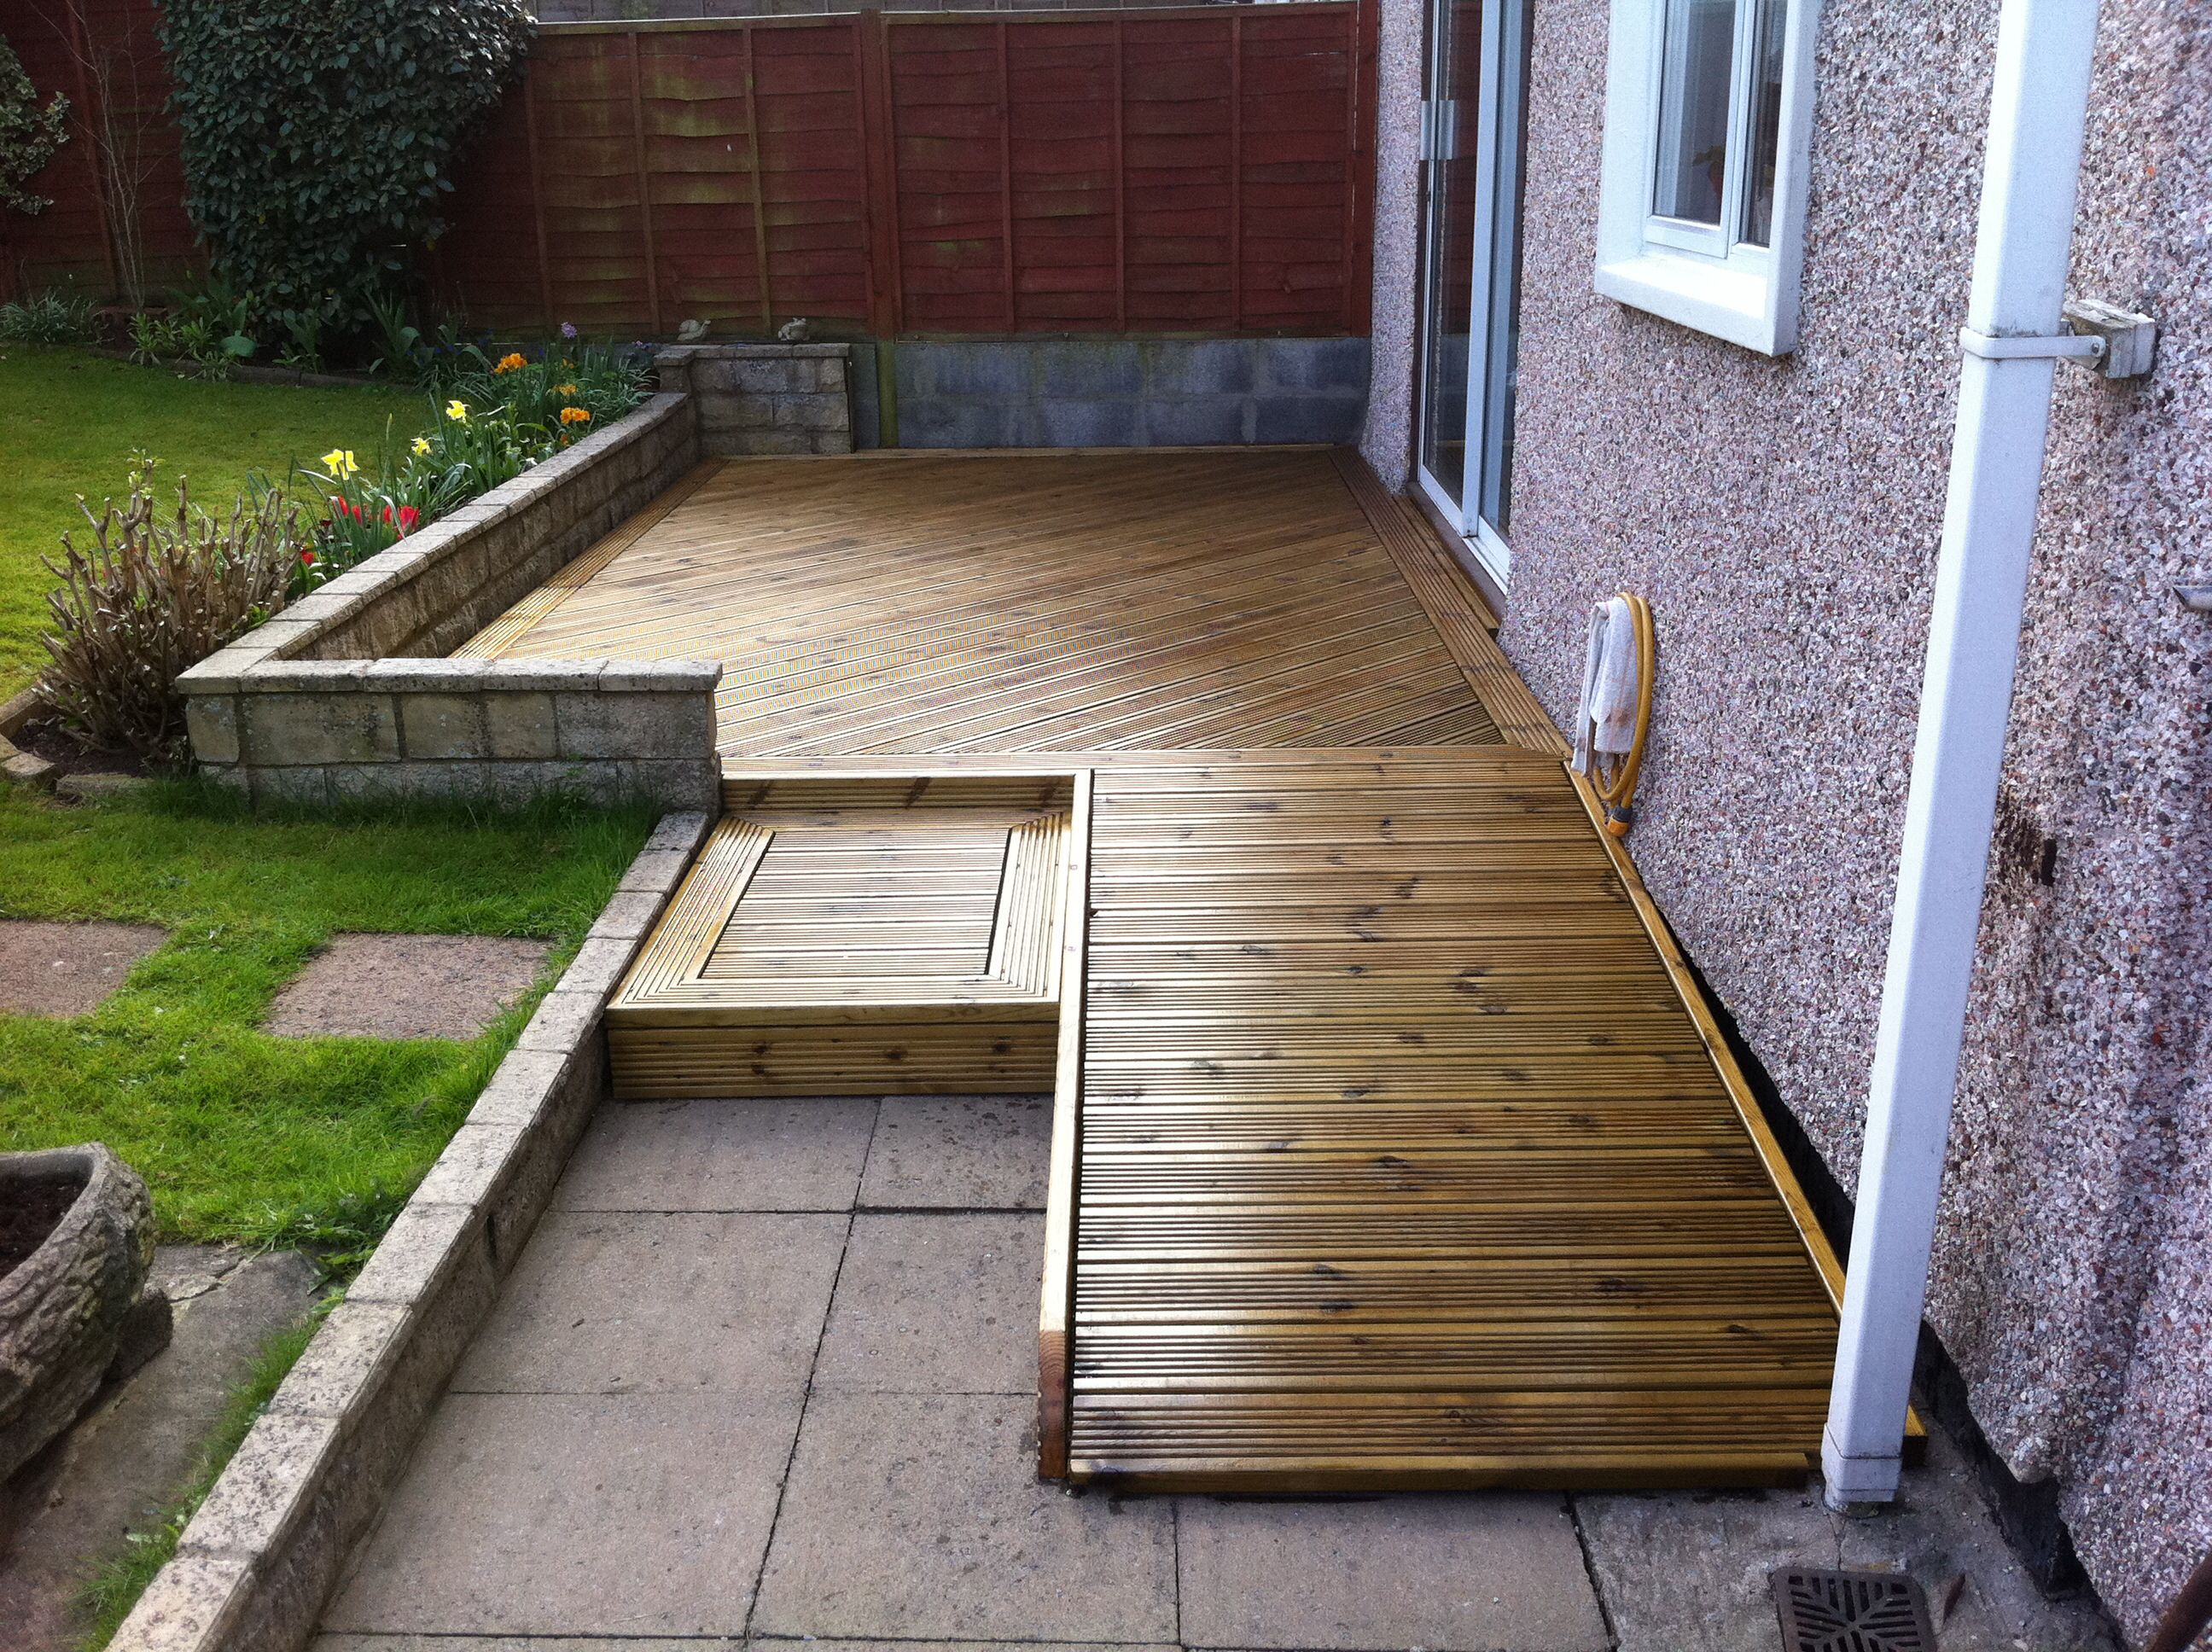 Decking with ramp backyard walkway mobile home porch